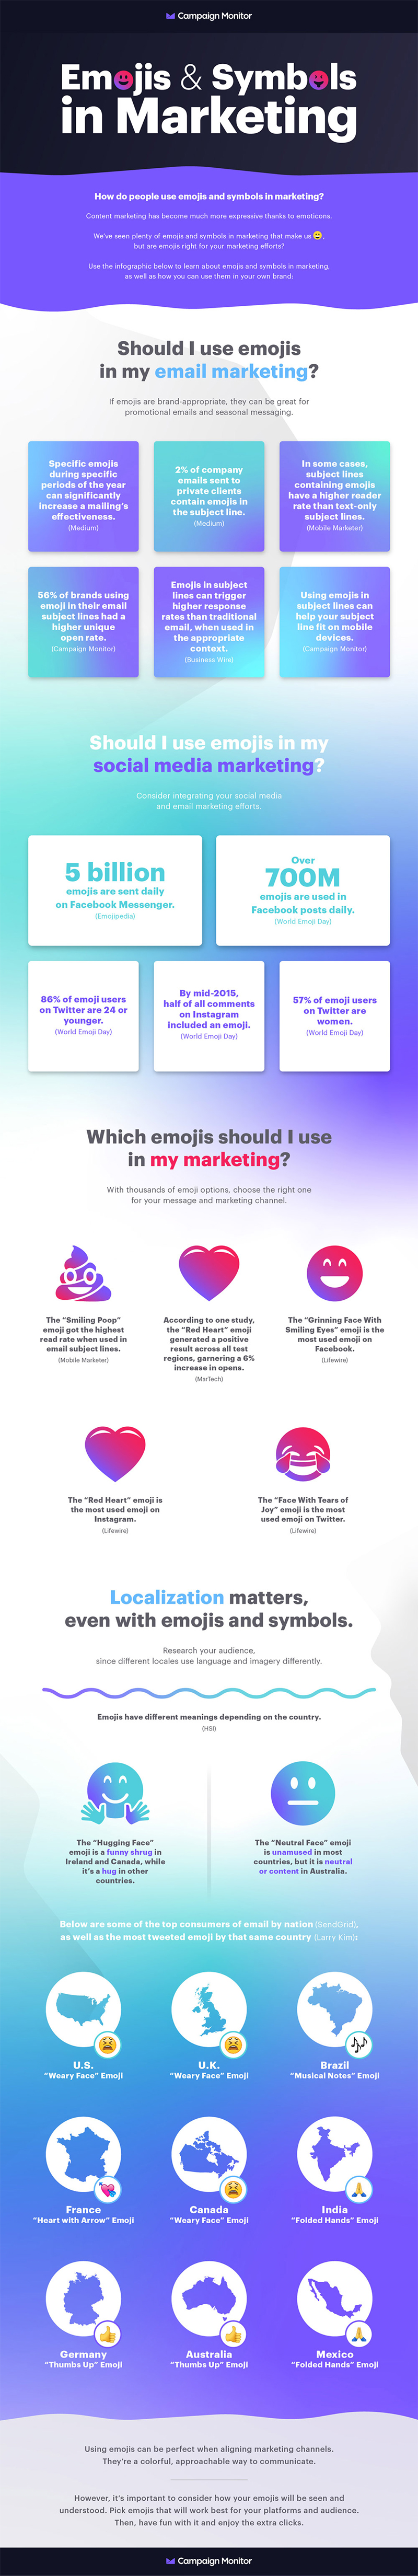 Infographic looks at emoji usage in marketing